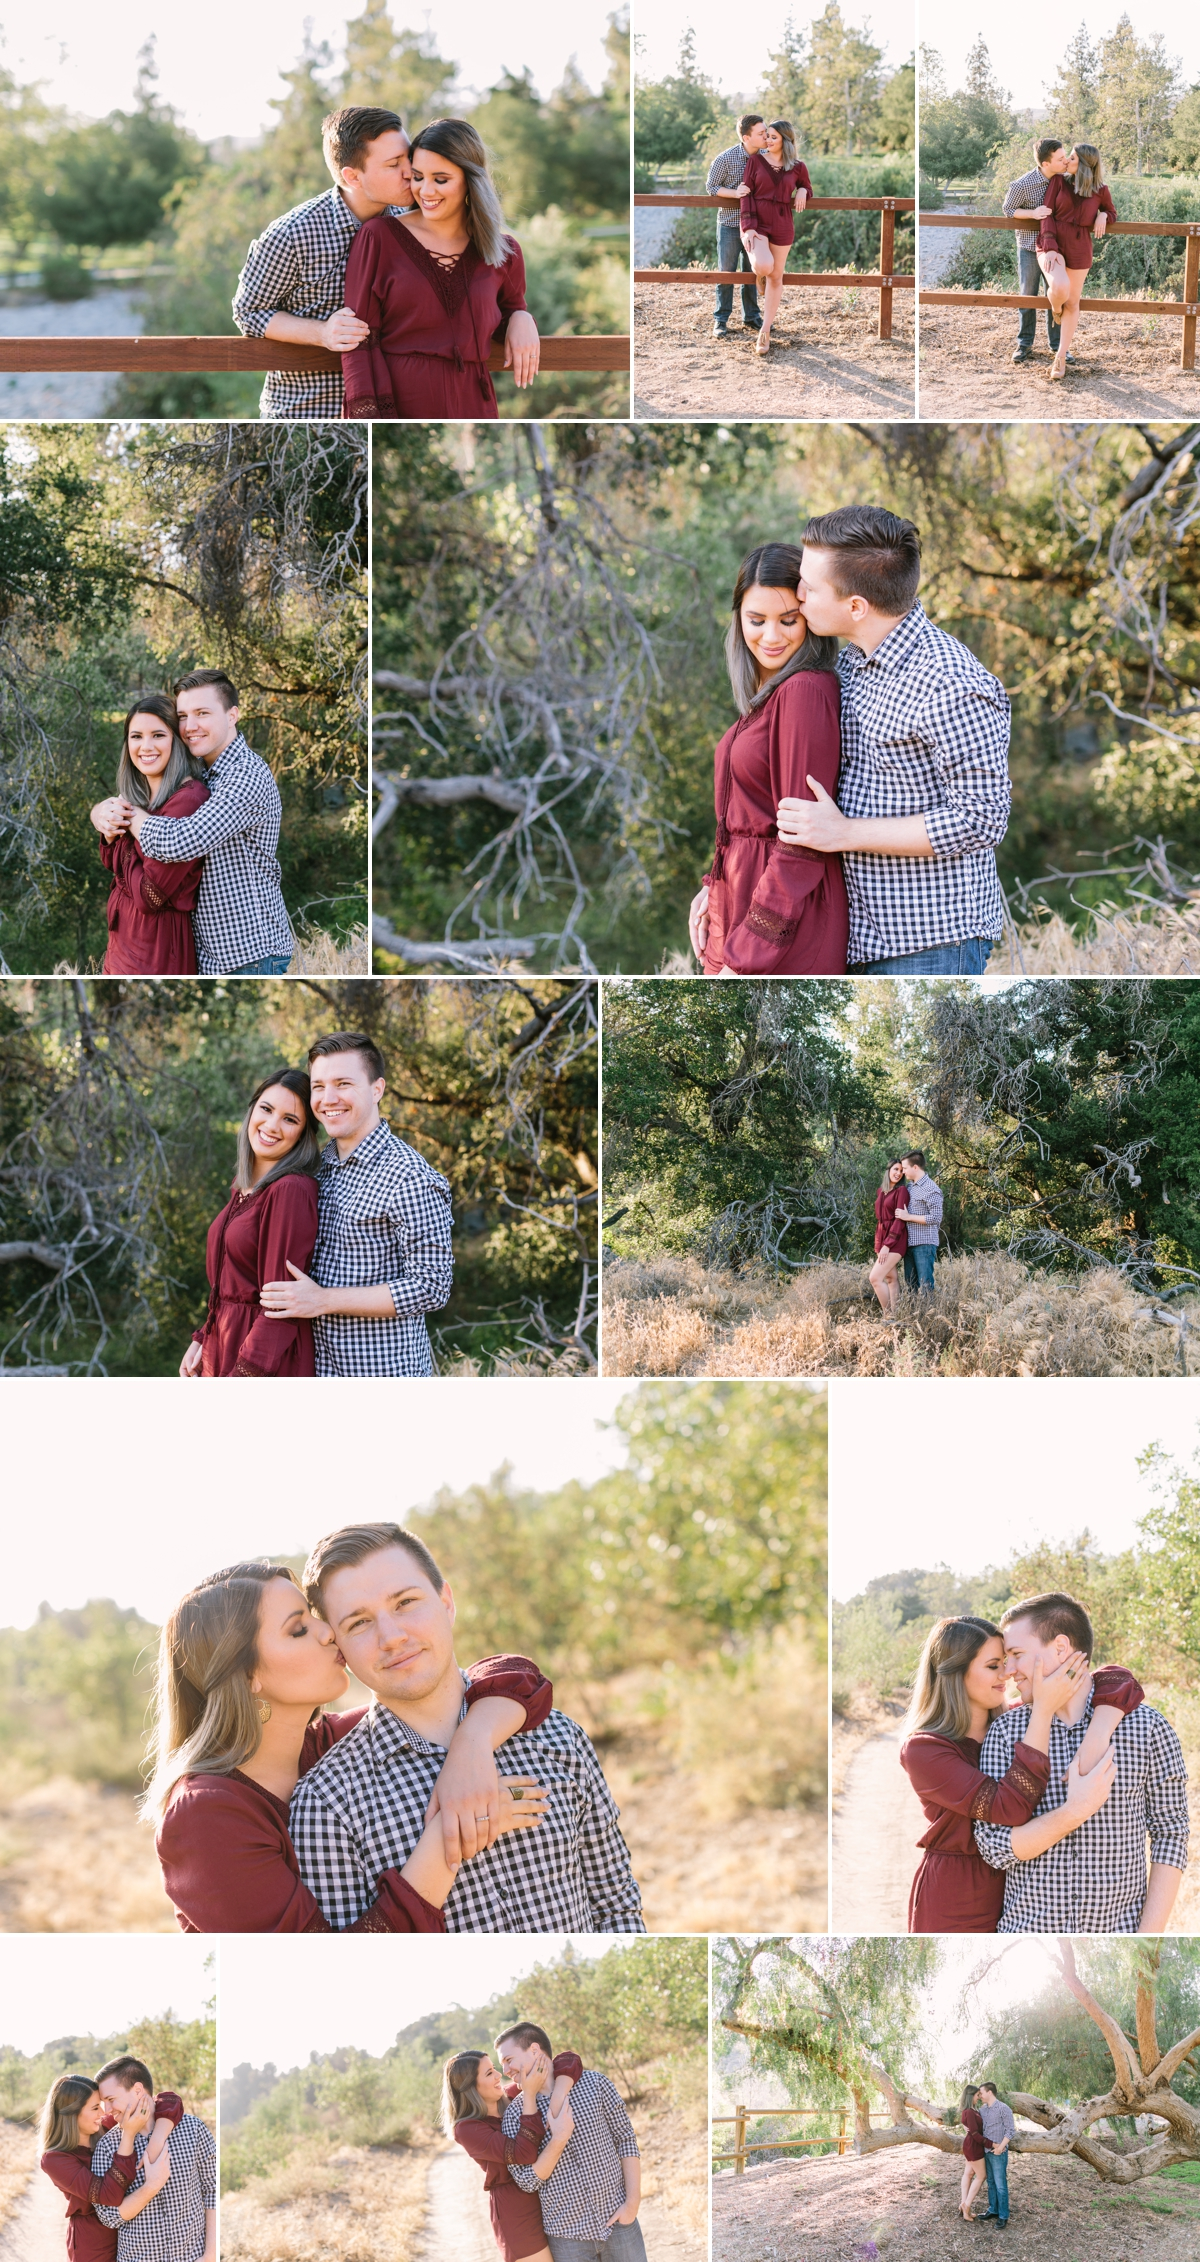 affordable-wedding-photography-orange-county-carbon-canyon-engagement-anniversary-shy-heart-studios-2